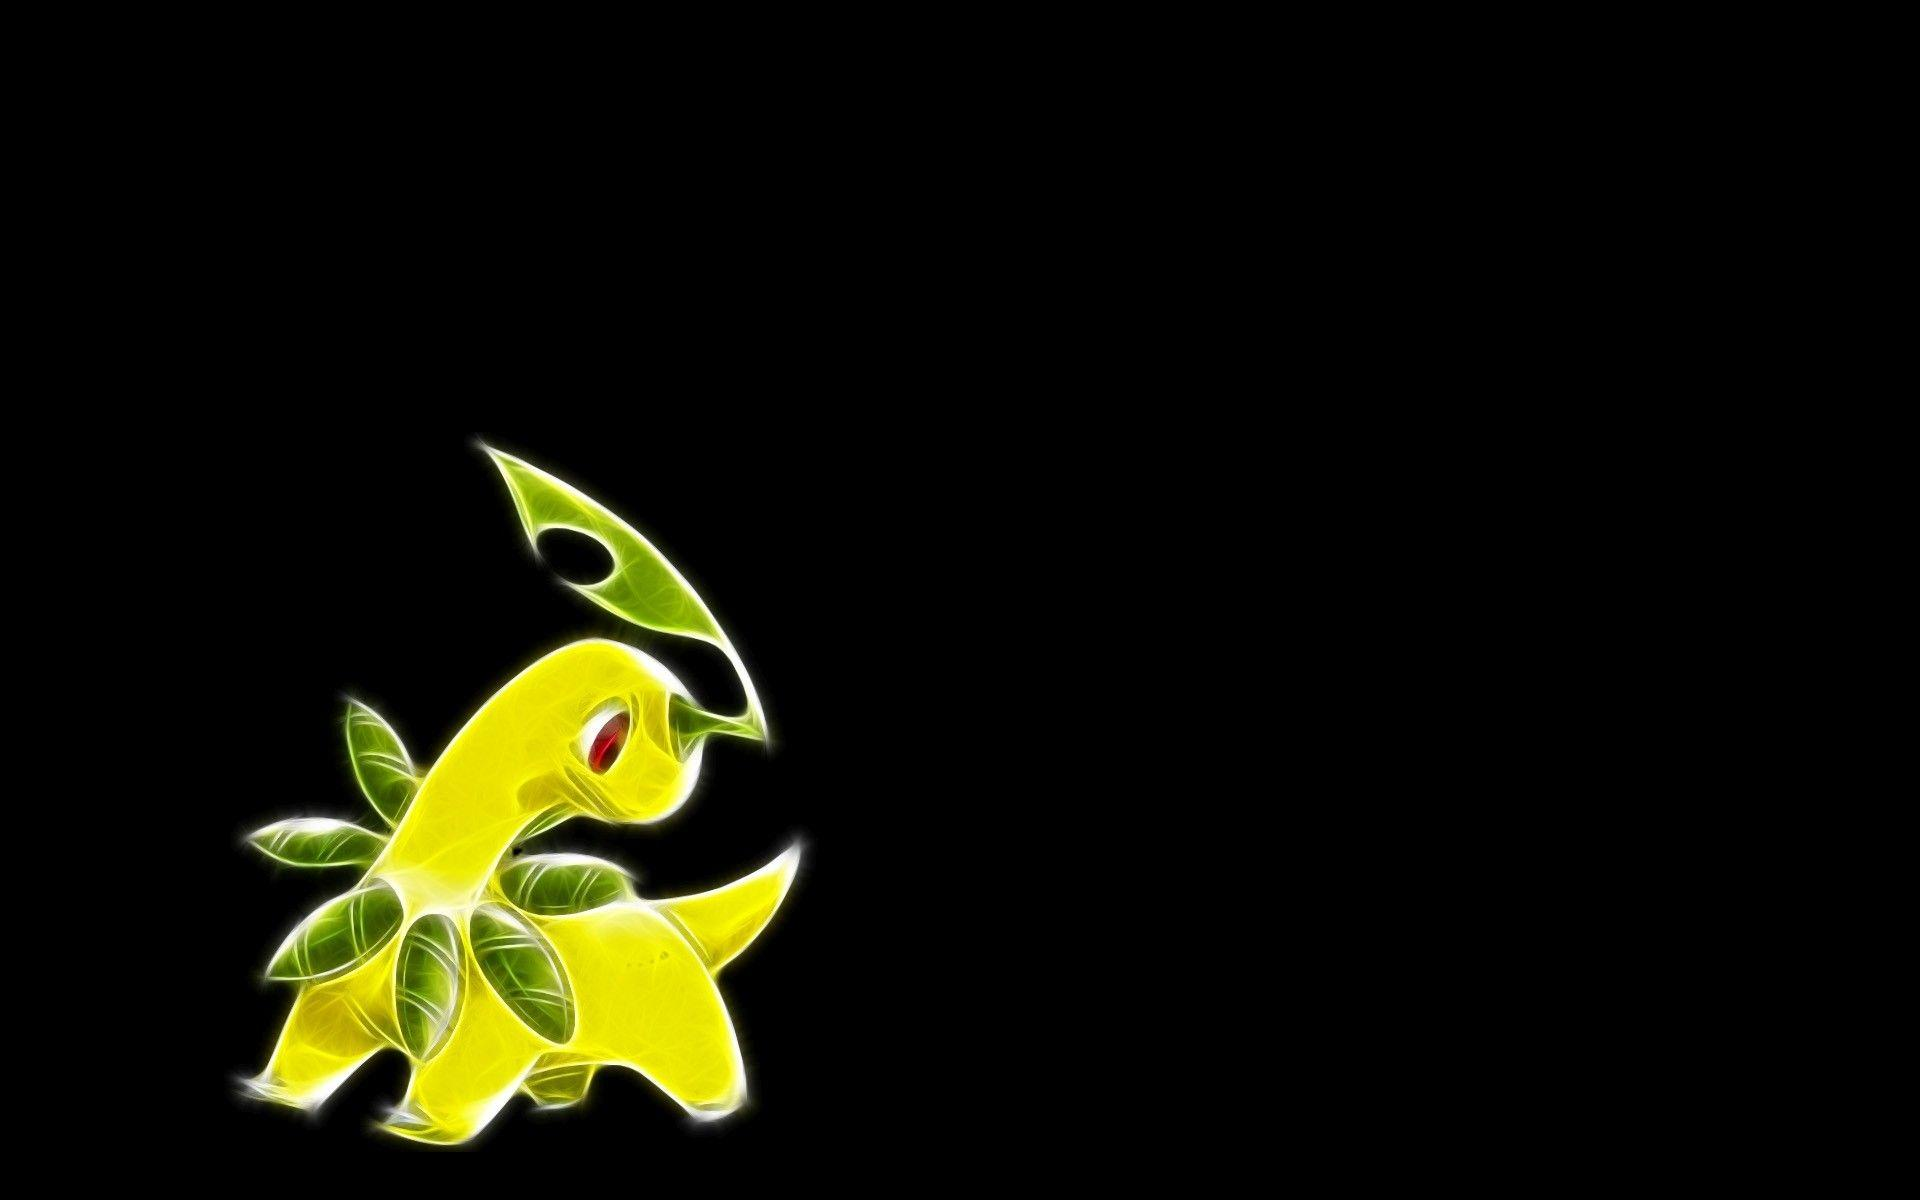 Games: Bayleef Pokemon Full HD Wallpaper 1920x1200 for HD 16:9 ...